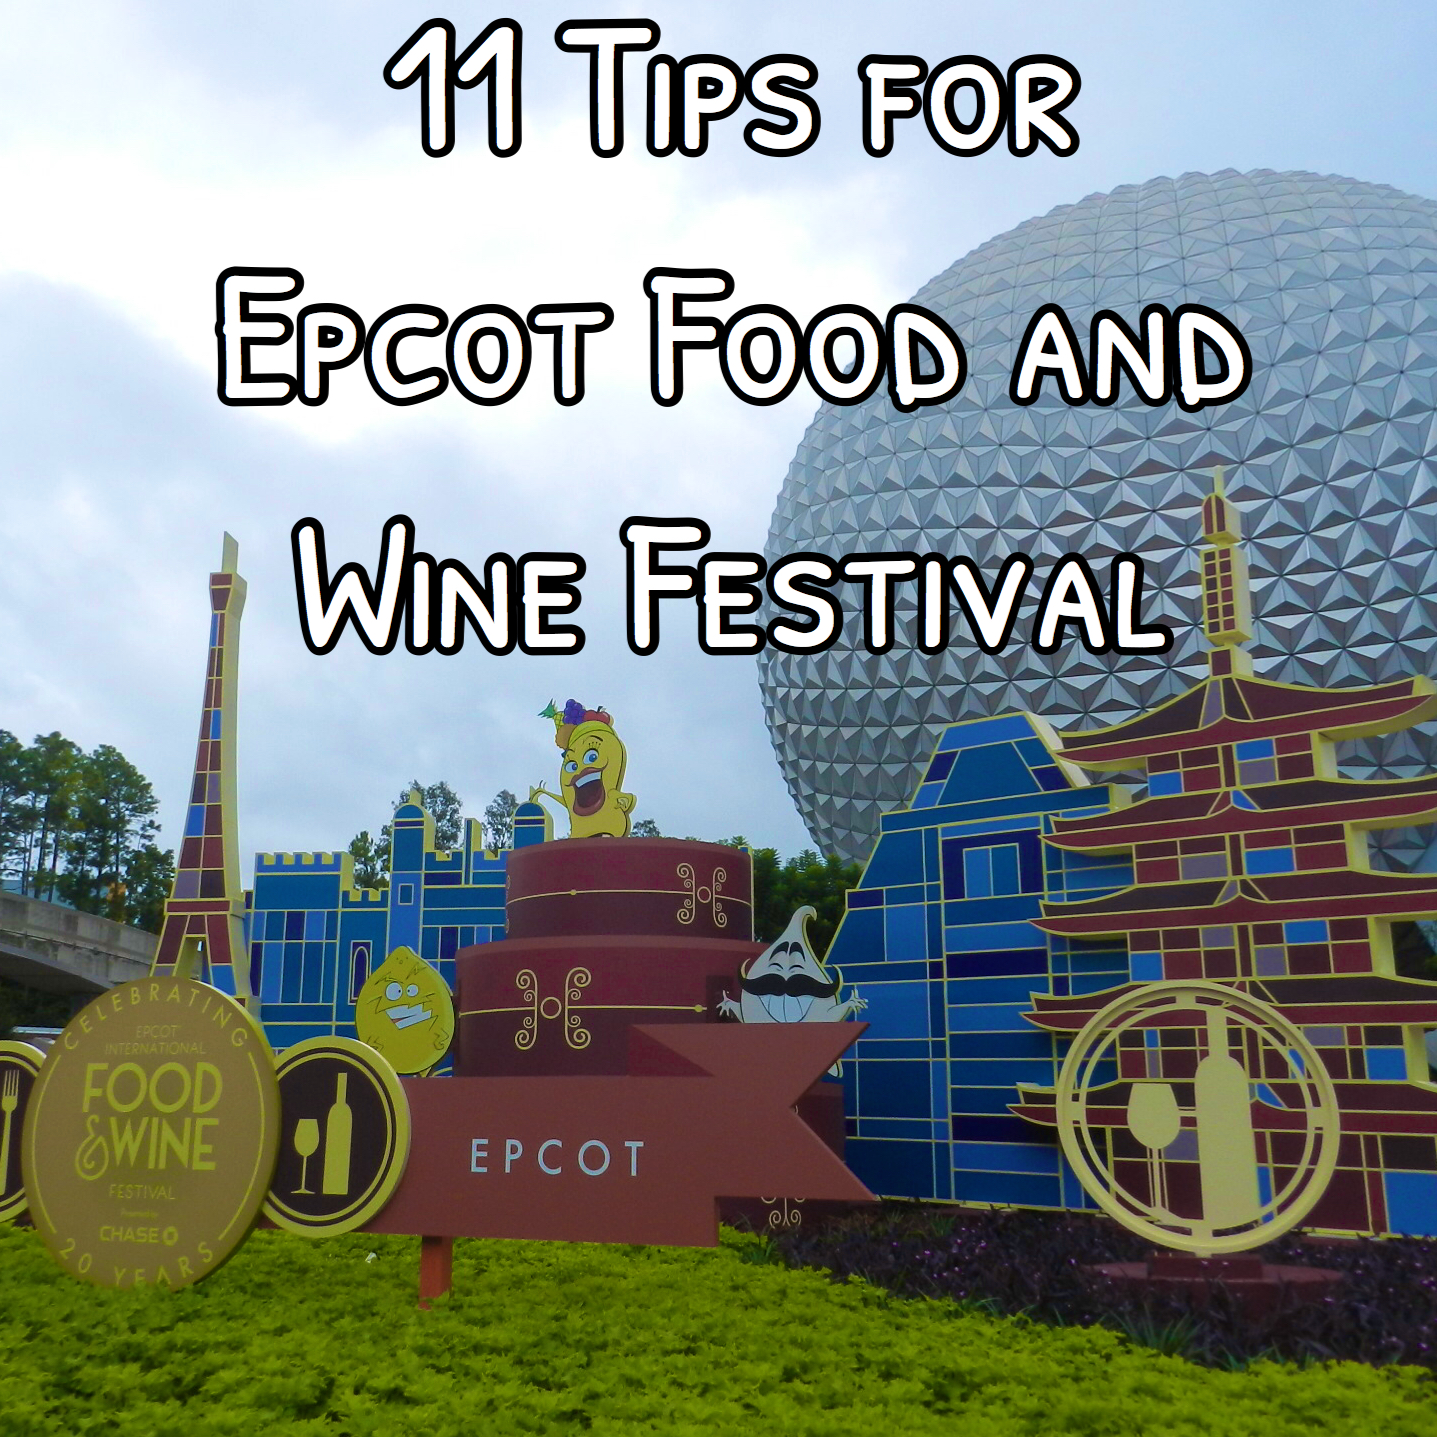 Epcot Food and Wine Festival Tips with Spaceship Earth globe in the background and festival banners on top.